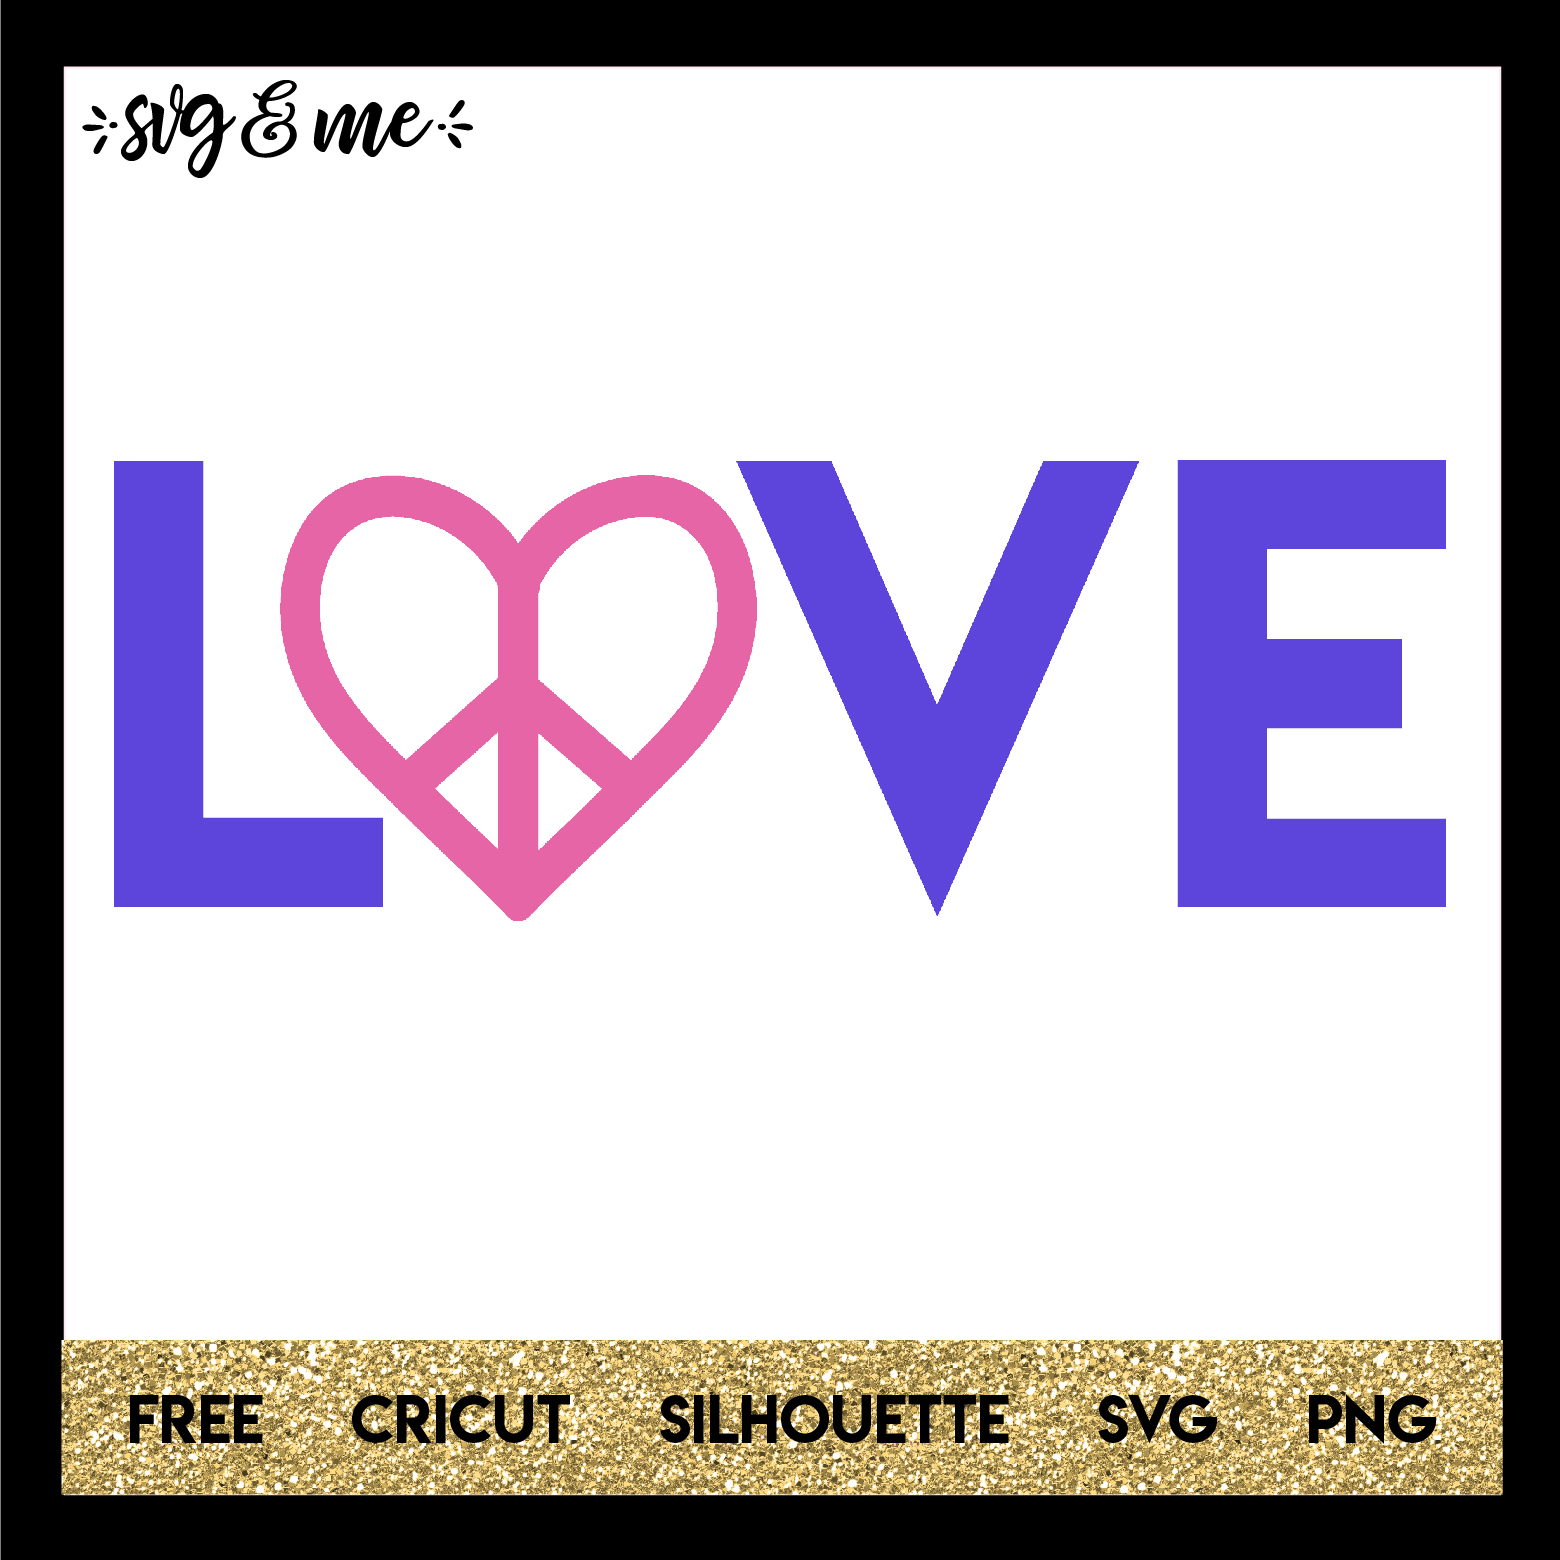 Free Svg Cut File For Cricut Silhouette And More Peace Love Svg Svg Me